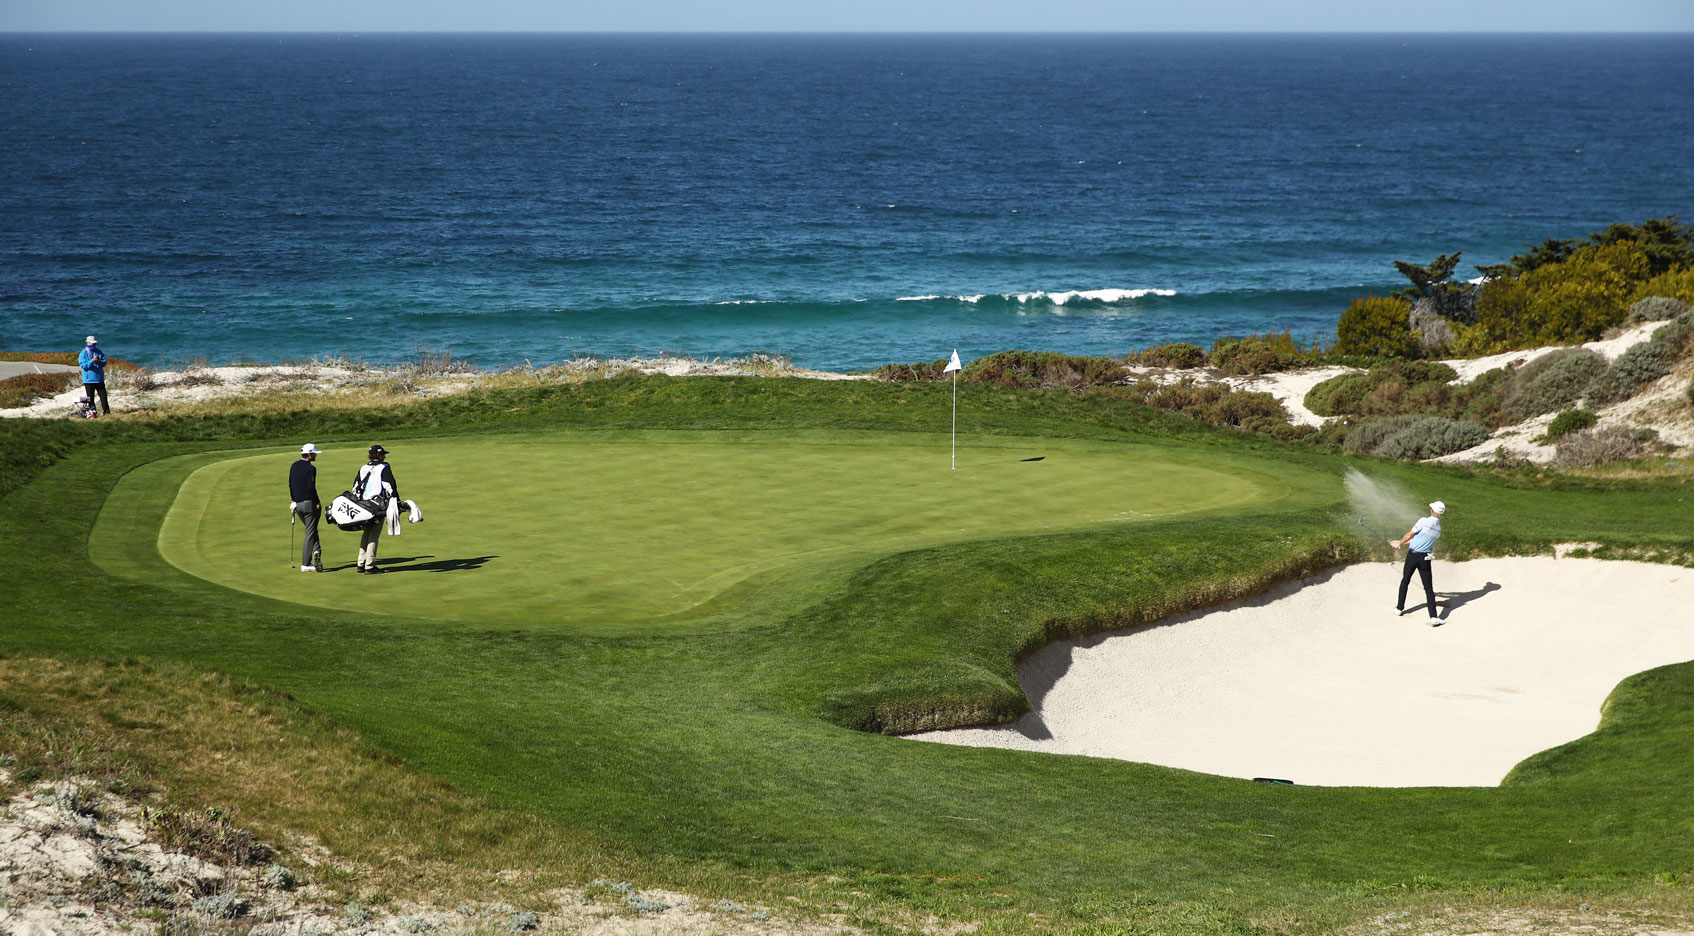 How to watch AT&T Pebble Beach Pro-Am, Round 4: Live scores, tee times, TV times